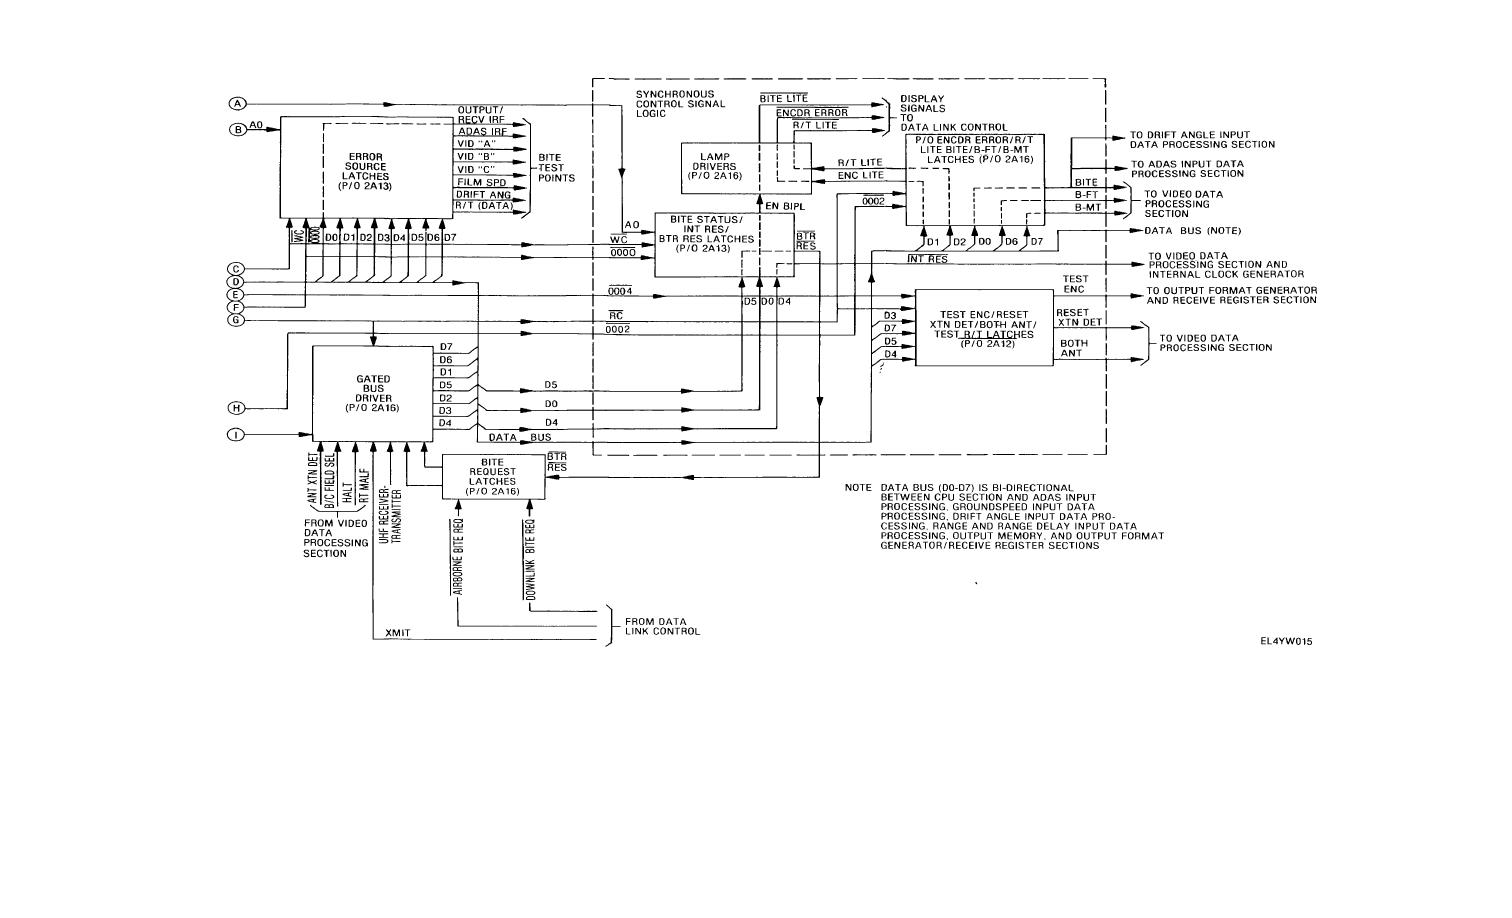 Block Diagram Cpu Wiring Library 1969 Pontiac Lemans Central Processing Unit Functional Sheet 2 Of